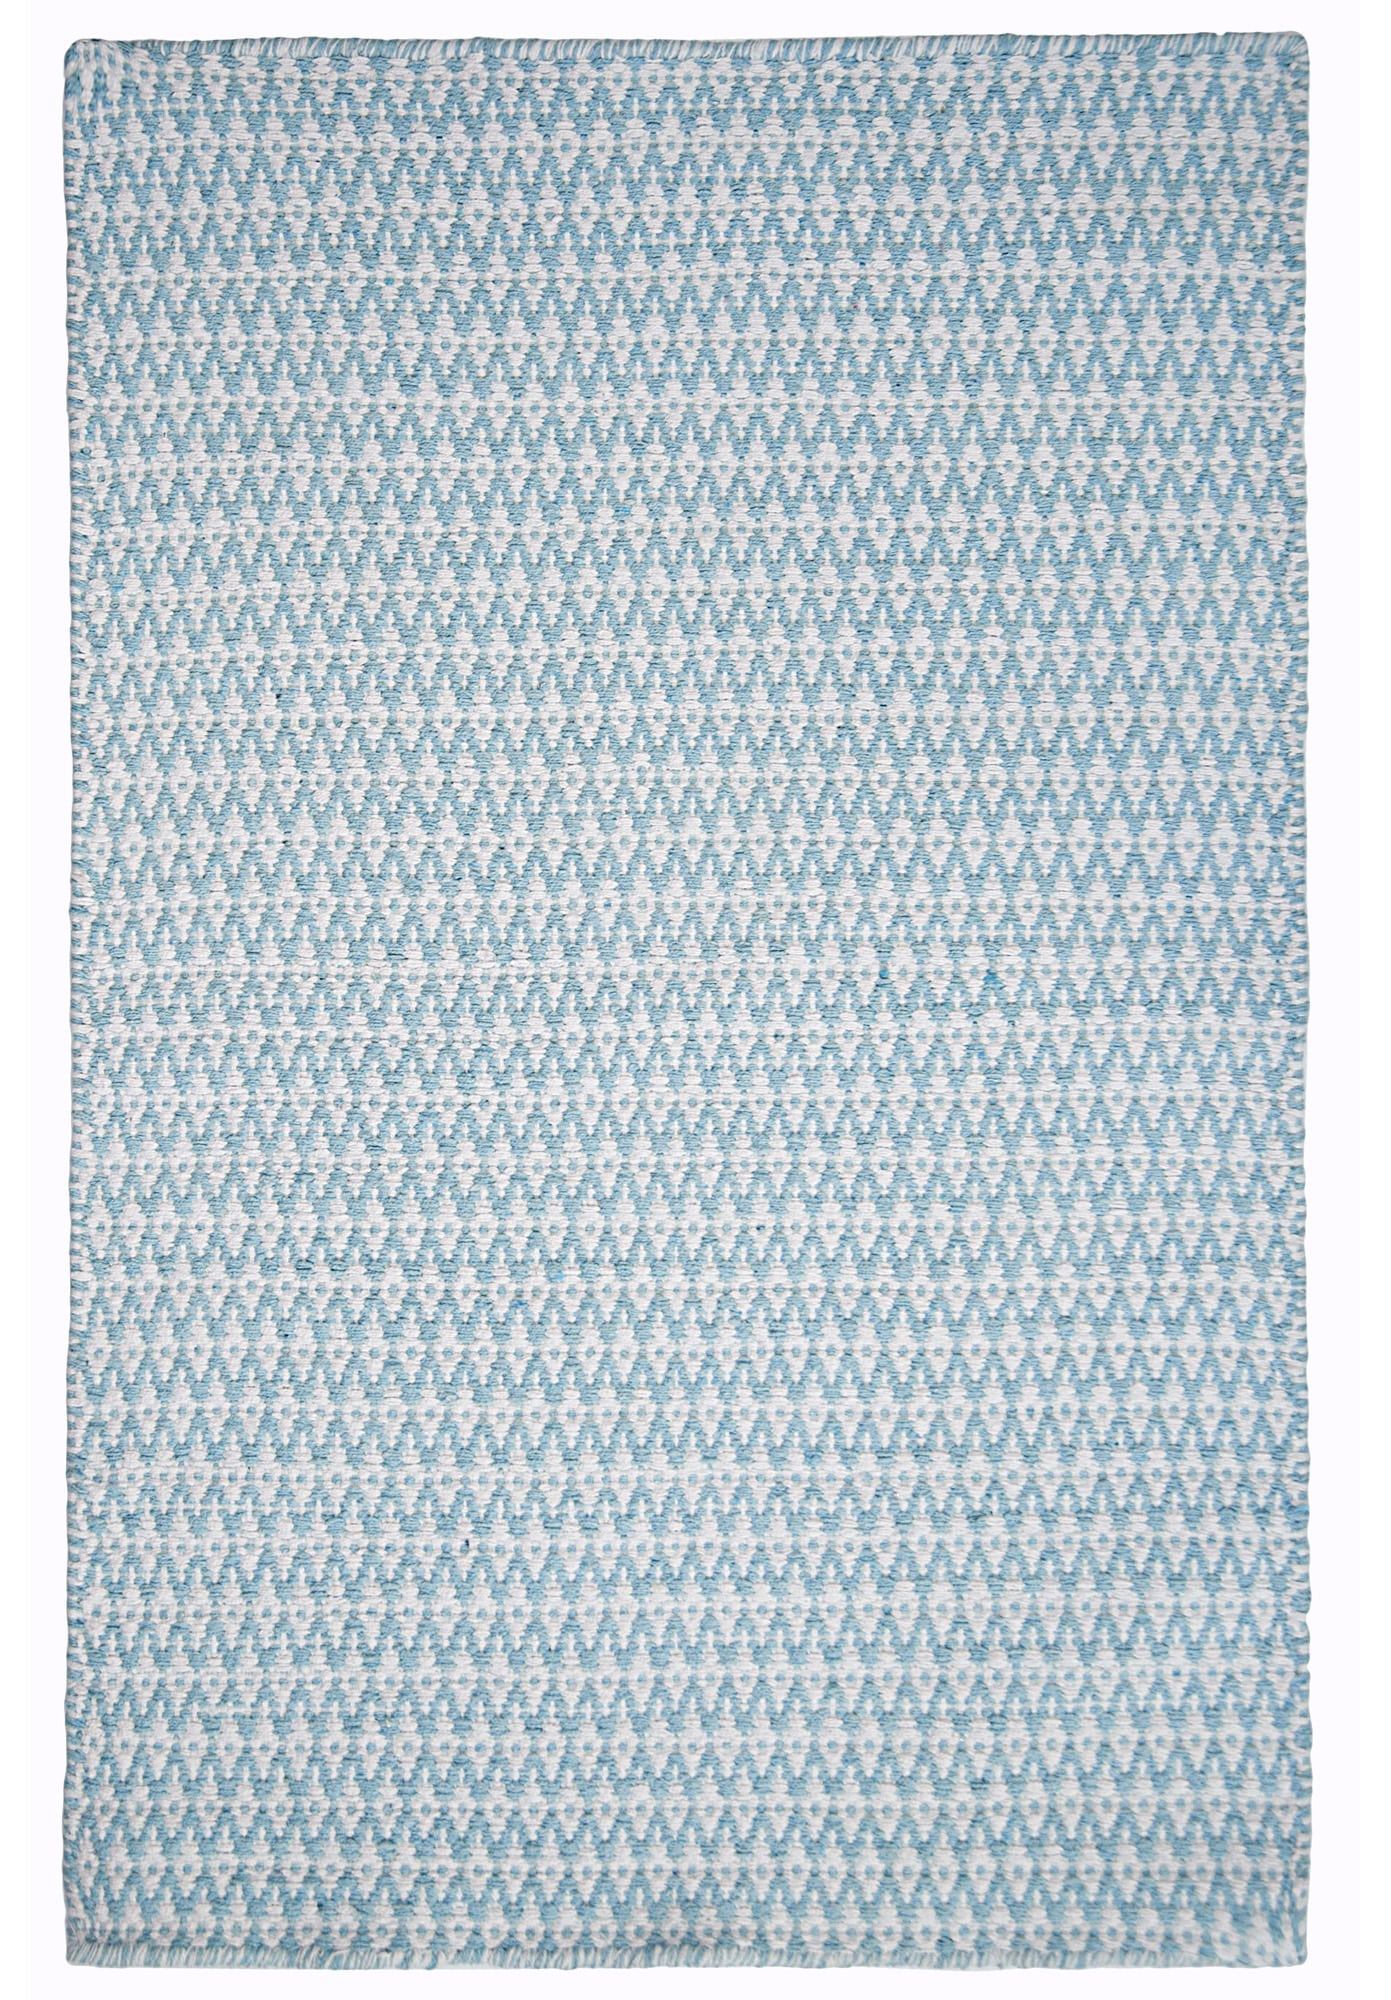 rug wayfair andover lilah mills blue reviews rugs pdx light area